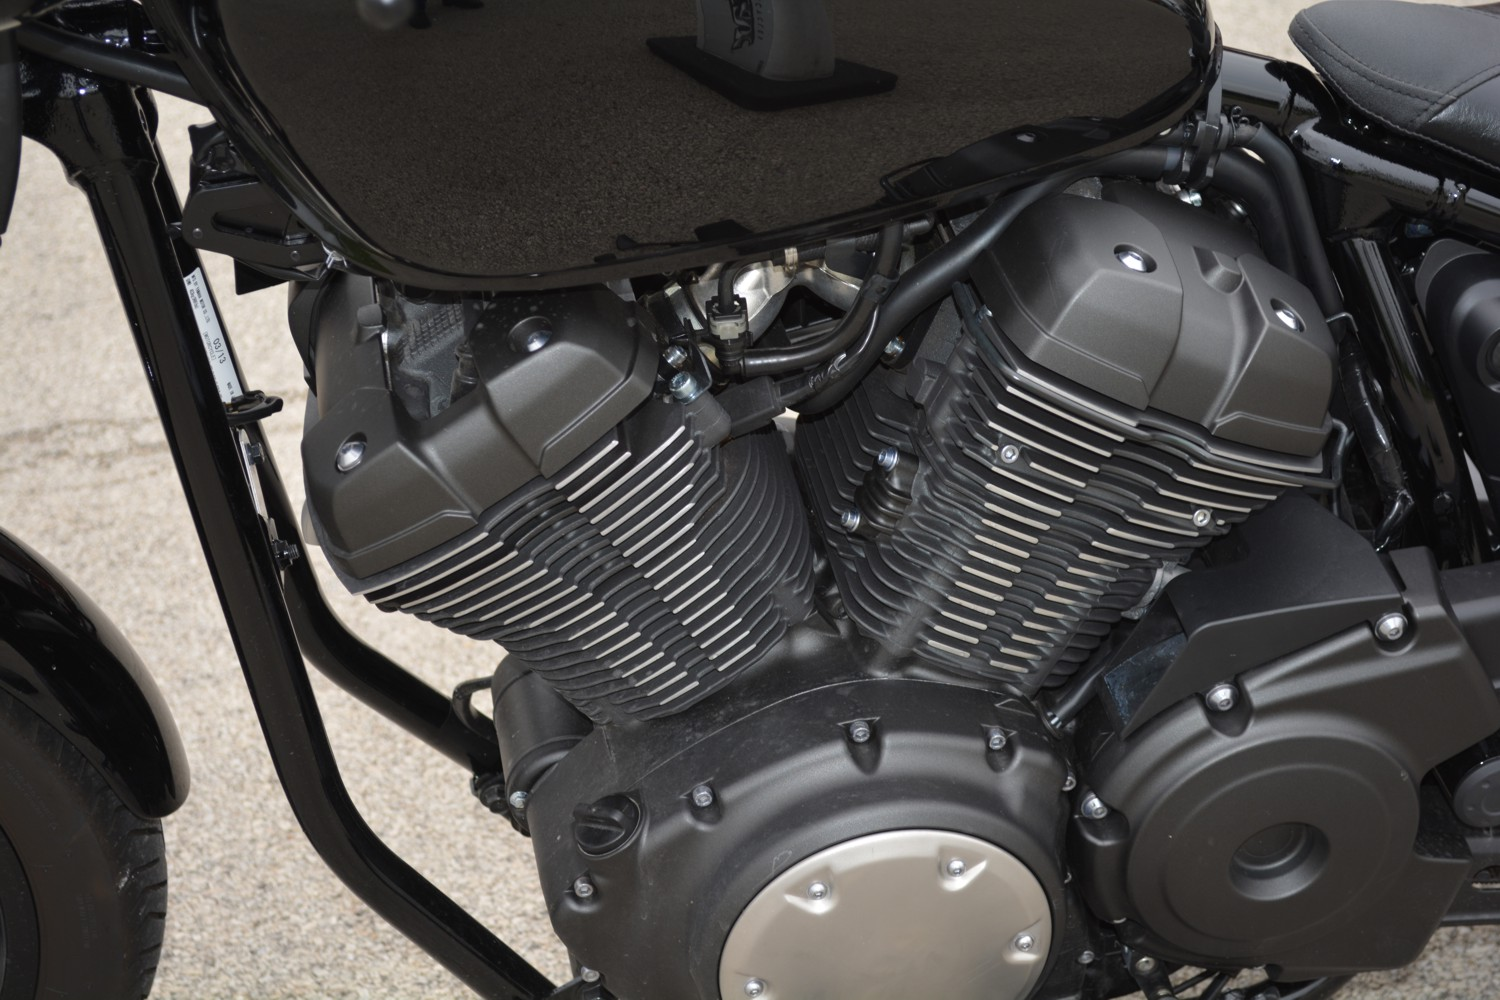 2014 Yamaha Bolt Demo Ride Gear Box Of Motorcycle The V Twin Engine Is Most Important Component Any Cruiser Knows That So They Bolted One In Im Funny